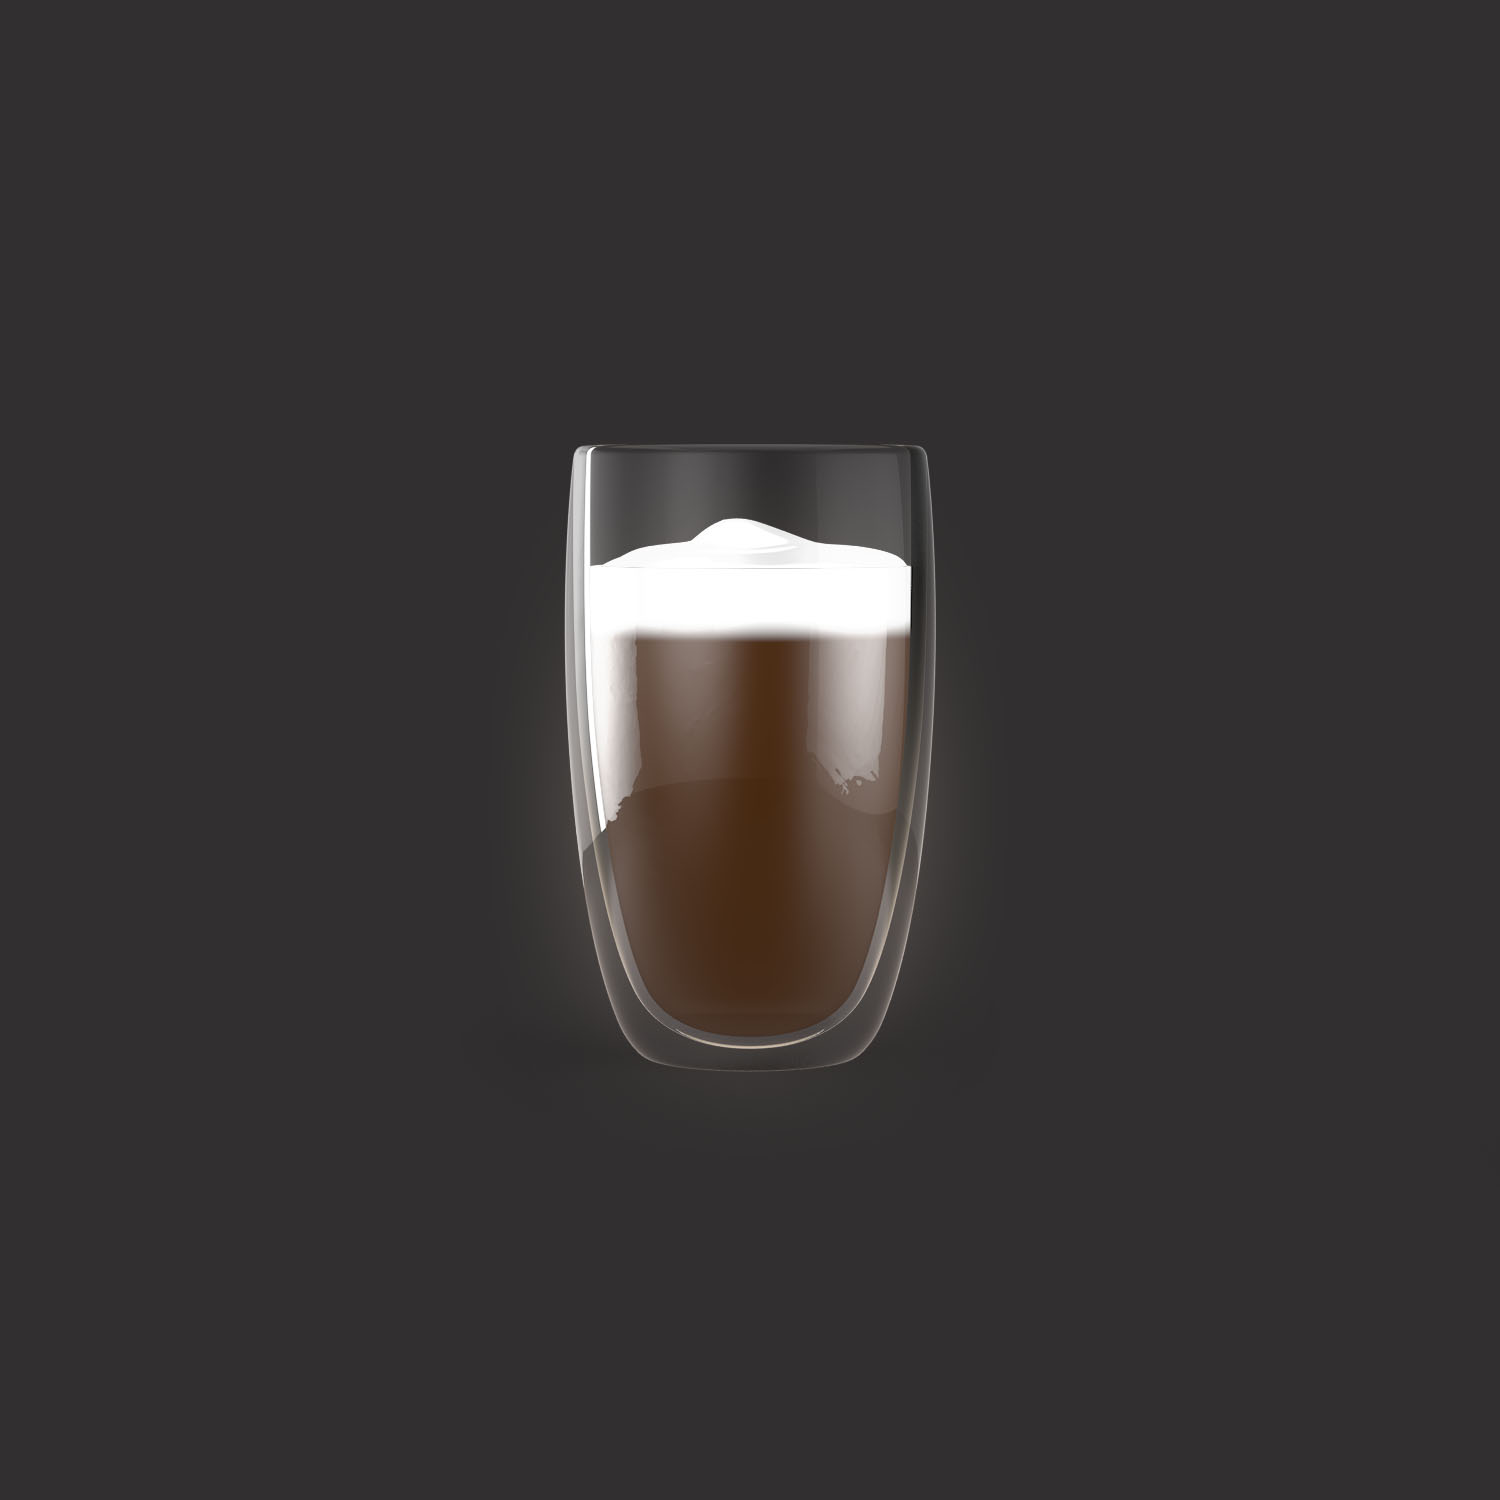 Binar I Motion Design I Schoppe Instant Beverages